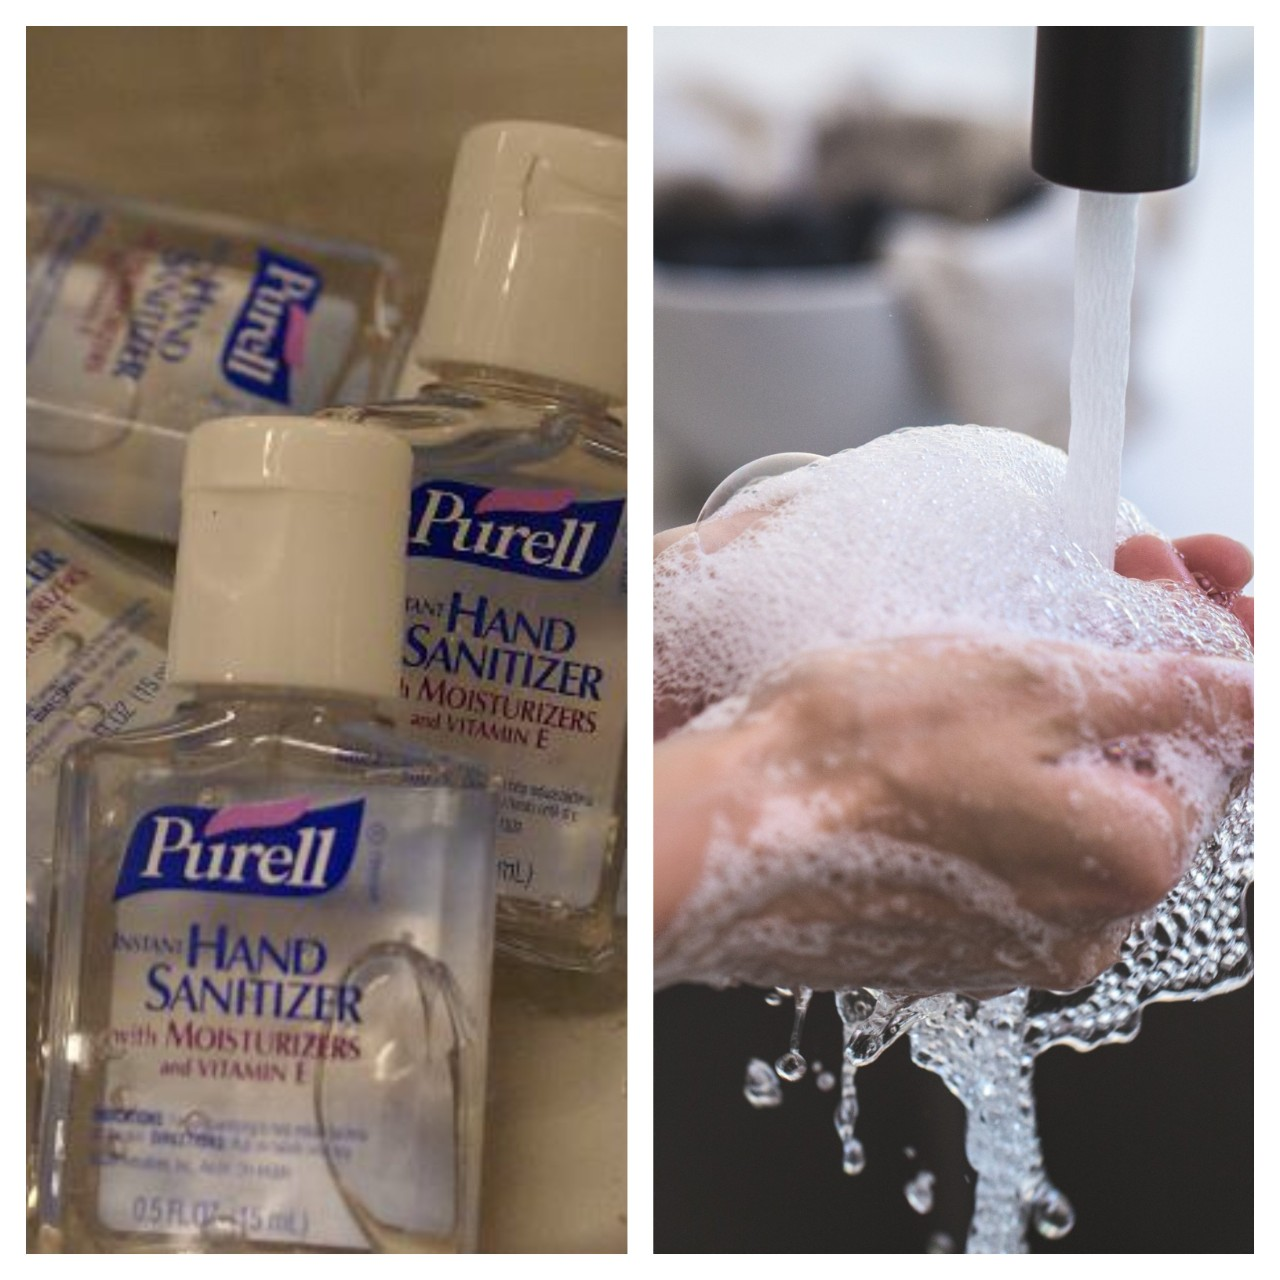 Singlecare: Can hand sanitizers or hand-washing kill the flu?